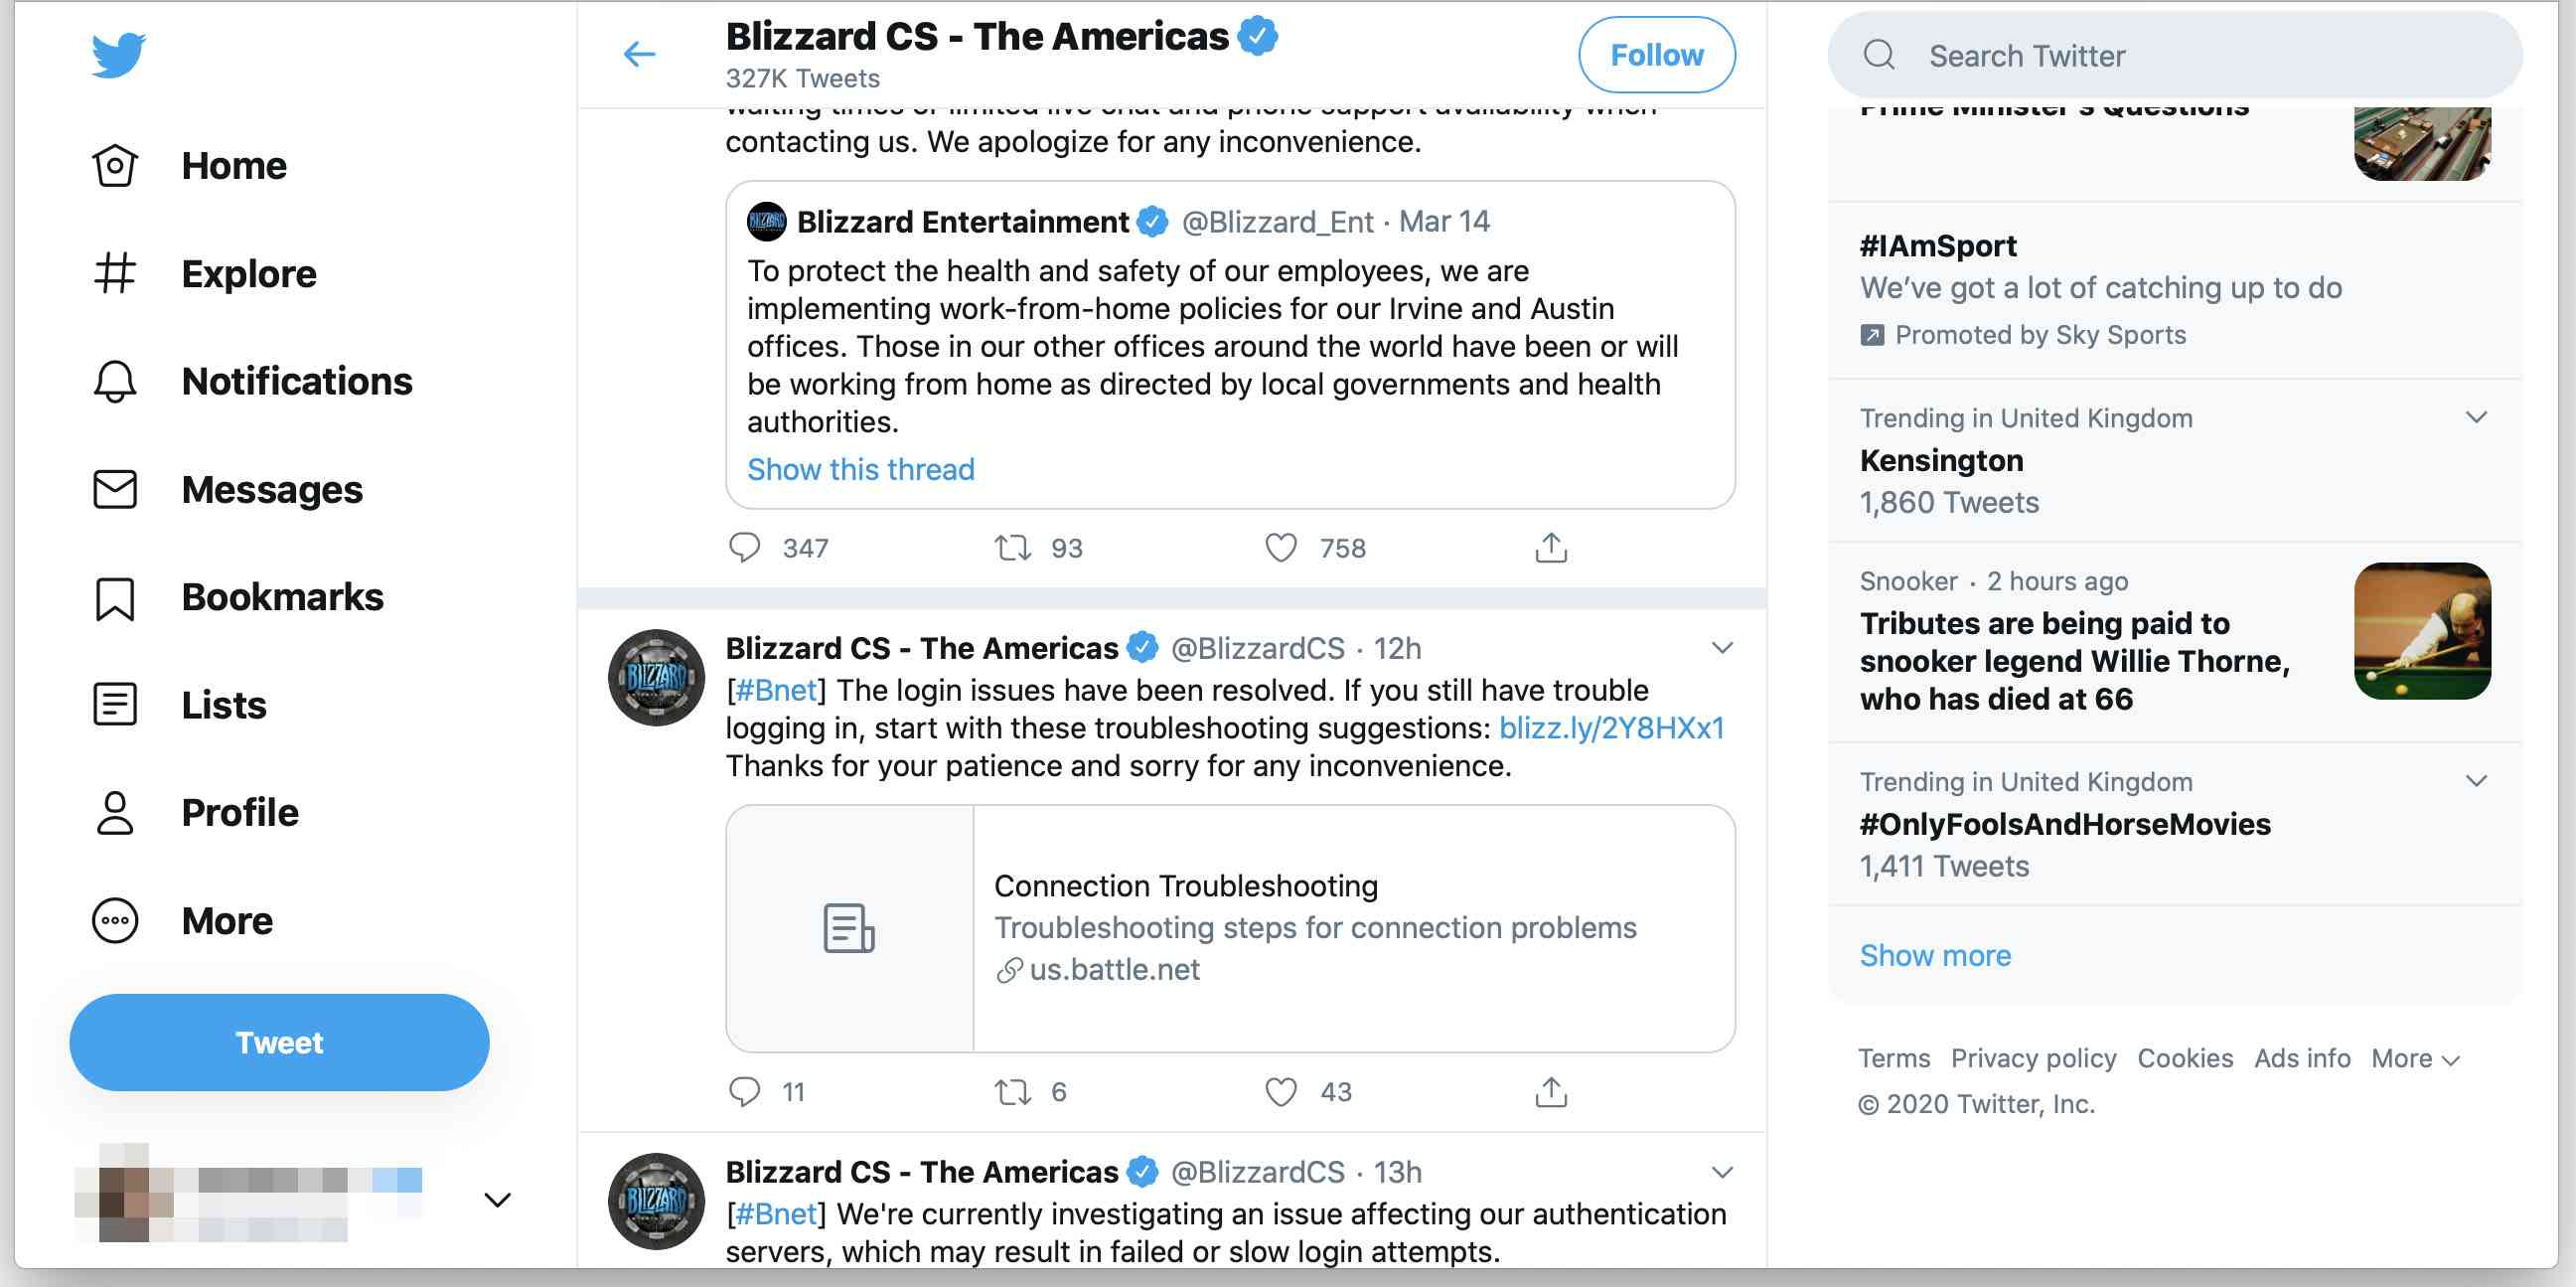 Blizzard customer service account on Twitter